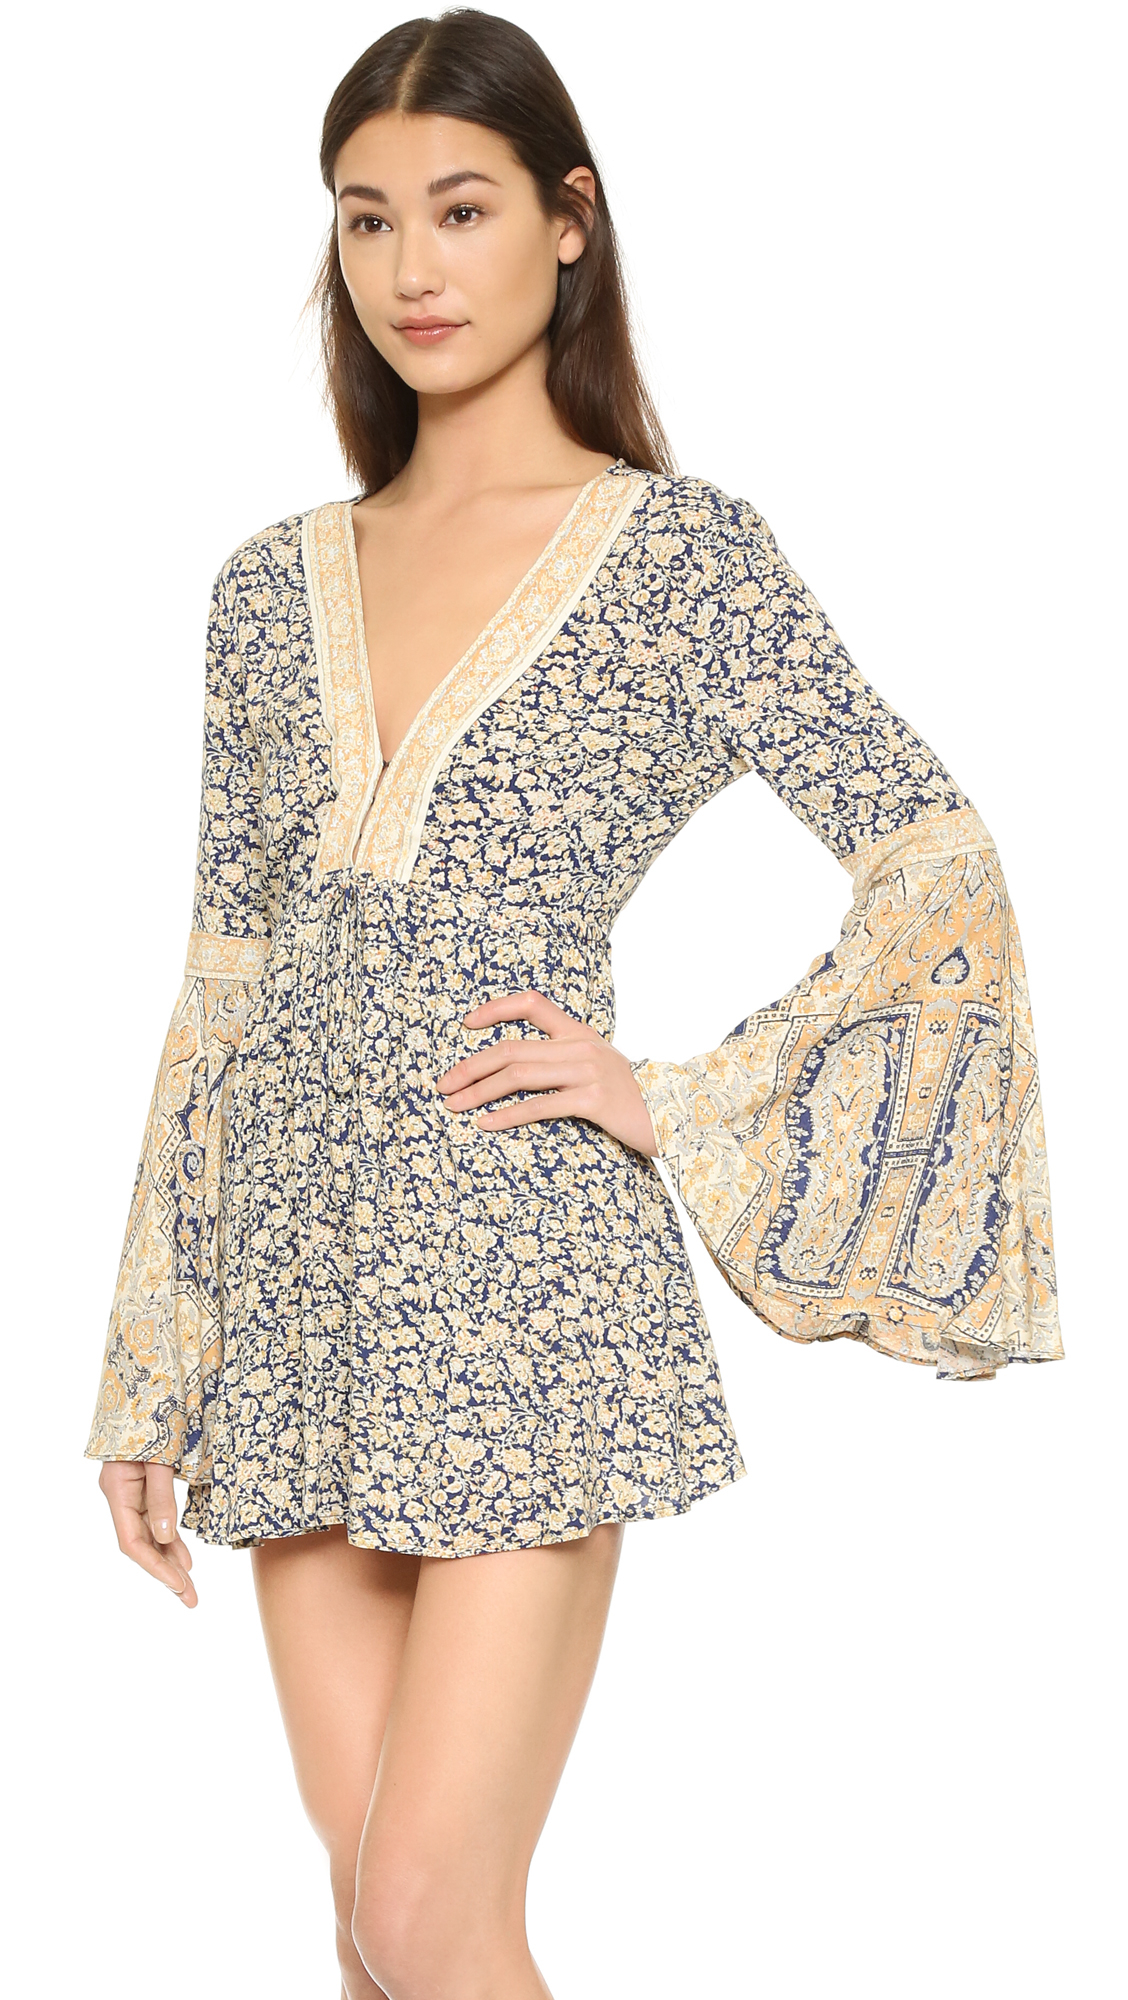 8873150b2c6 Lyst - Free People One Upon A Summertime Romper in Blue